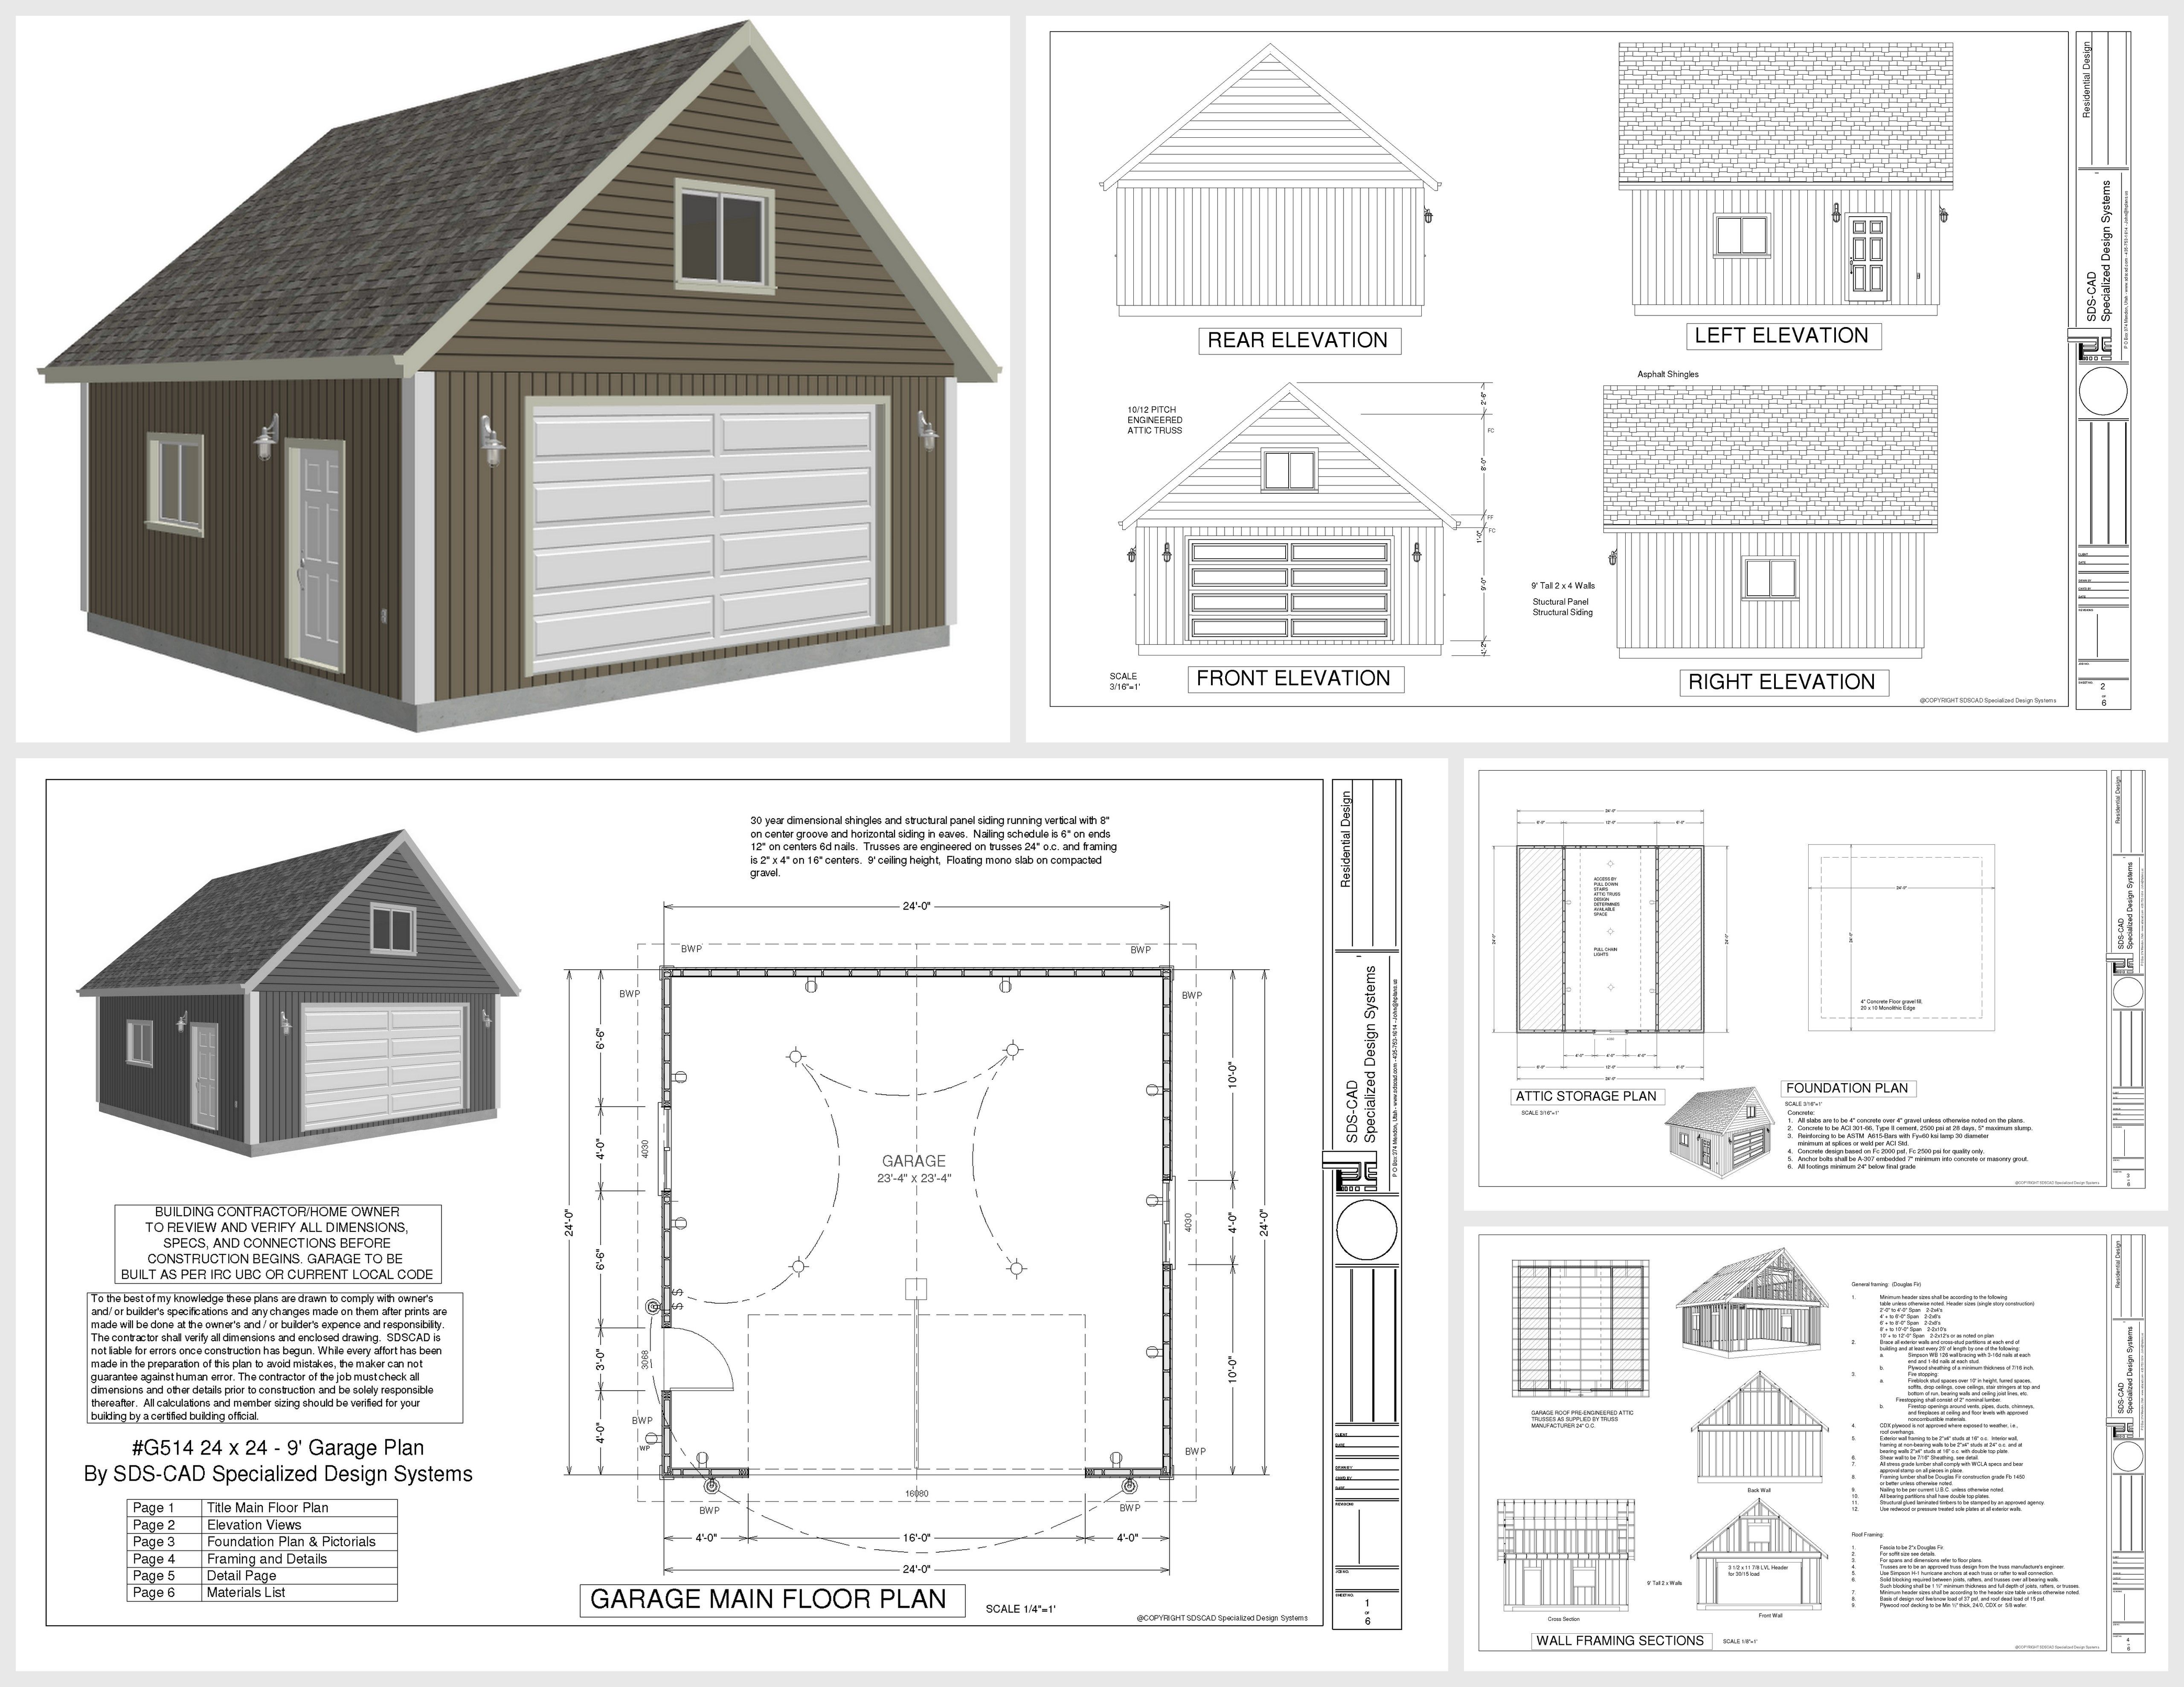 Super Garage Designs Nice Garage Plans With Bonus Room Traditional Largest Home Design Picture Inspirations Pitcheantrous